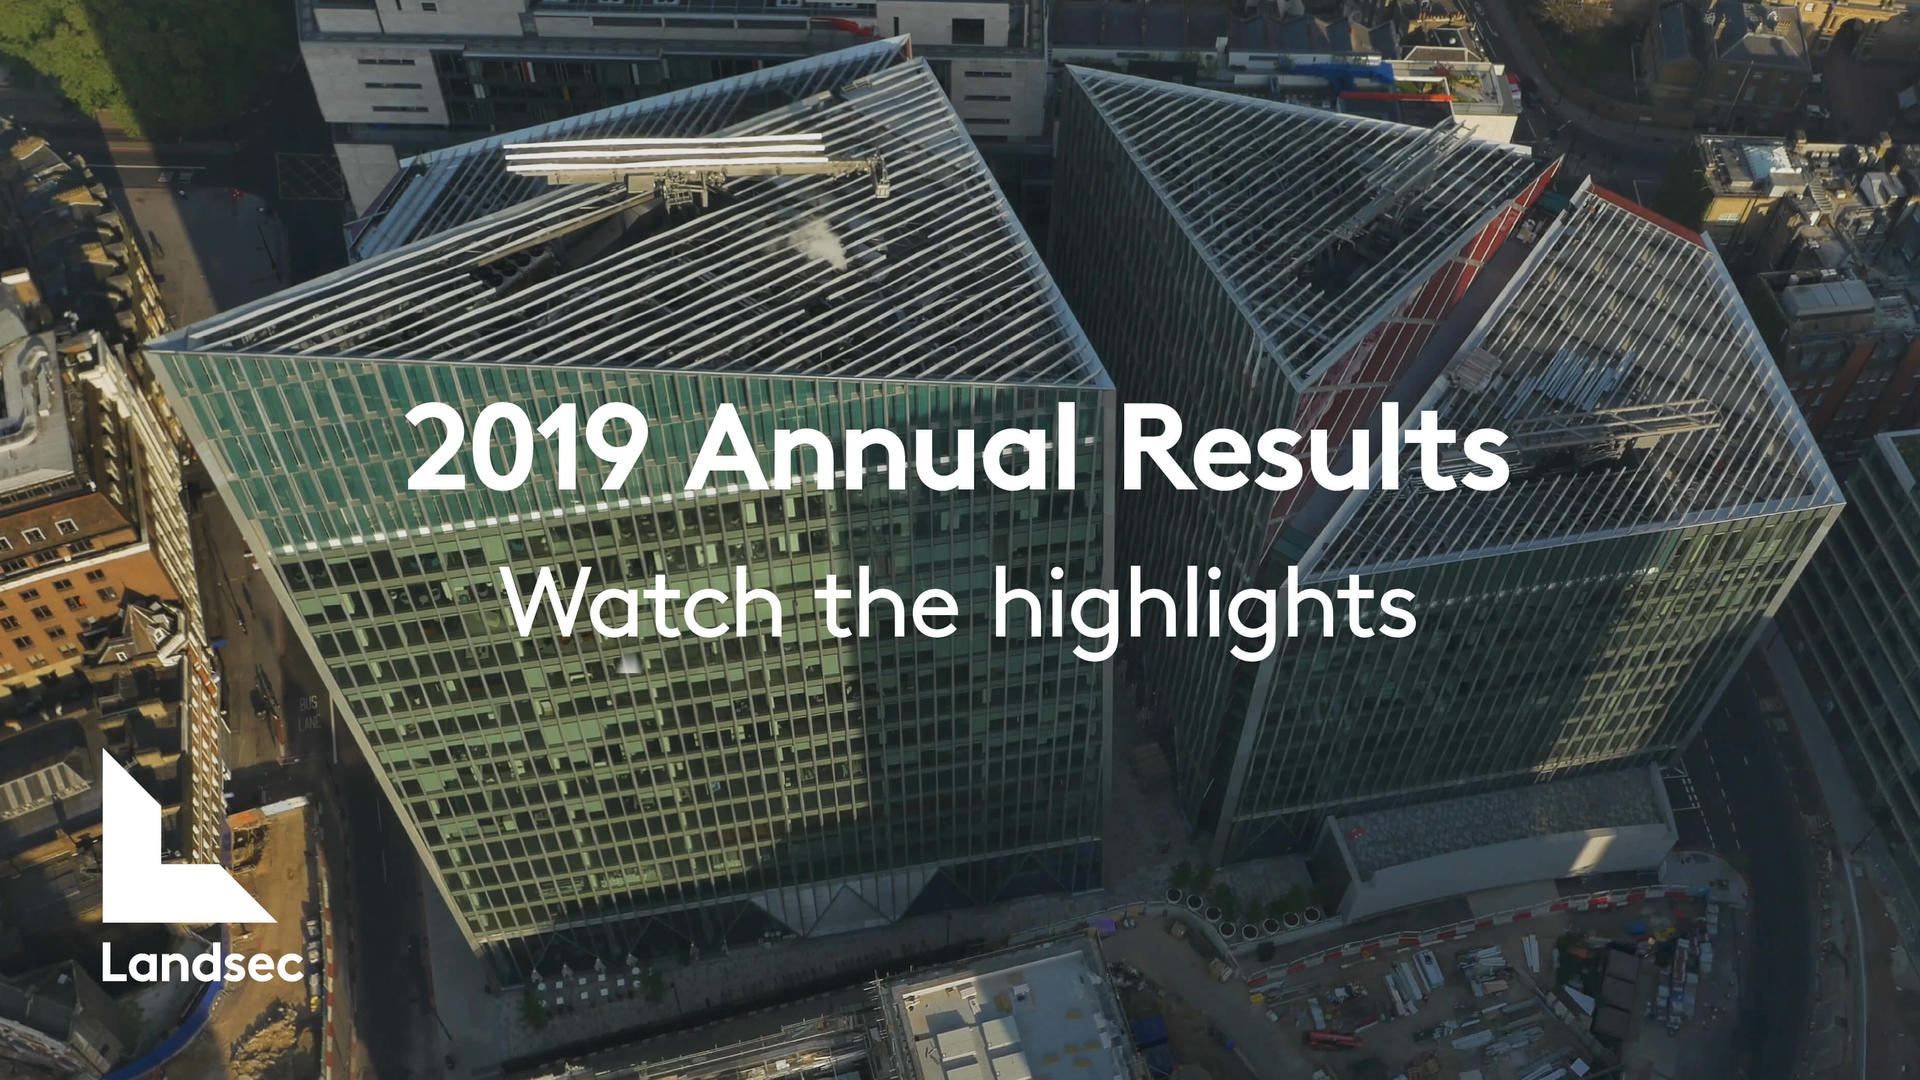 2019 Annual Results Highlight Video